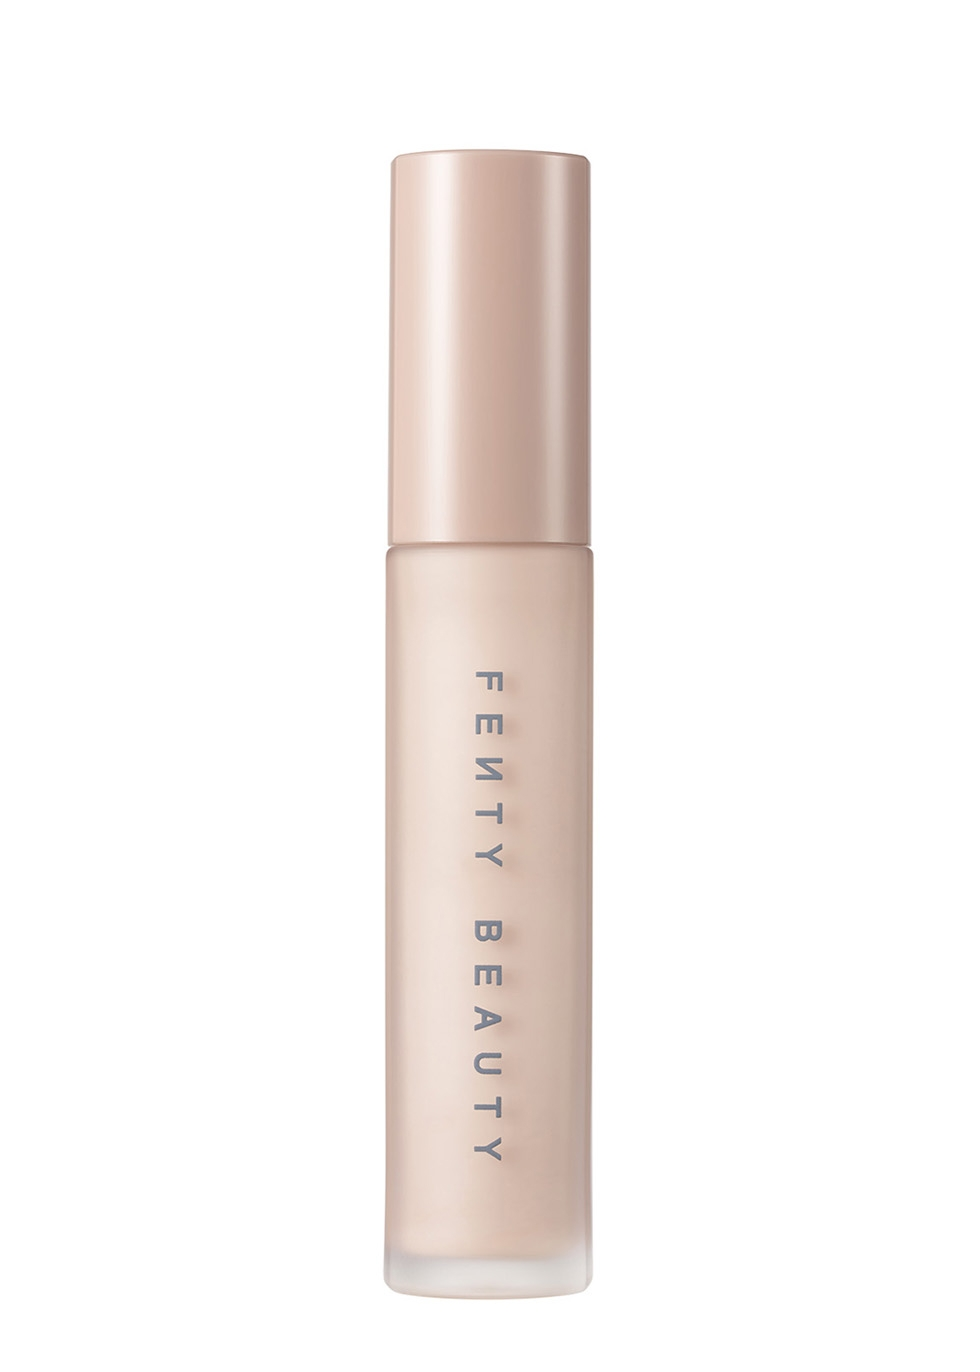 Rihanna Fenty Beauty Pro Filt'r Amplifying Eye Primer